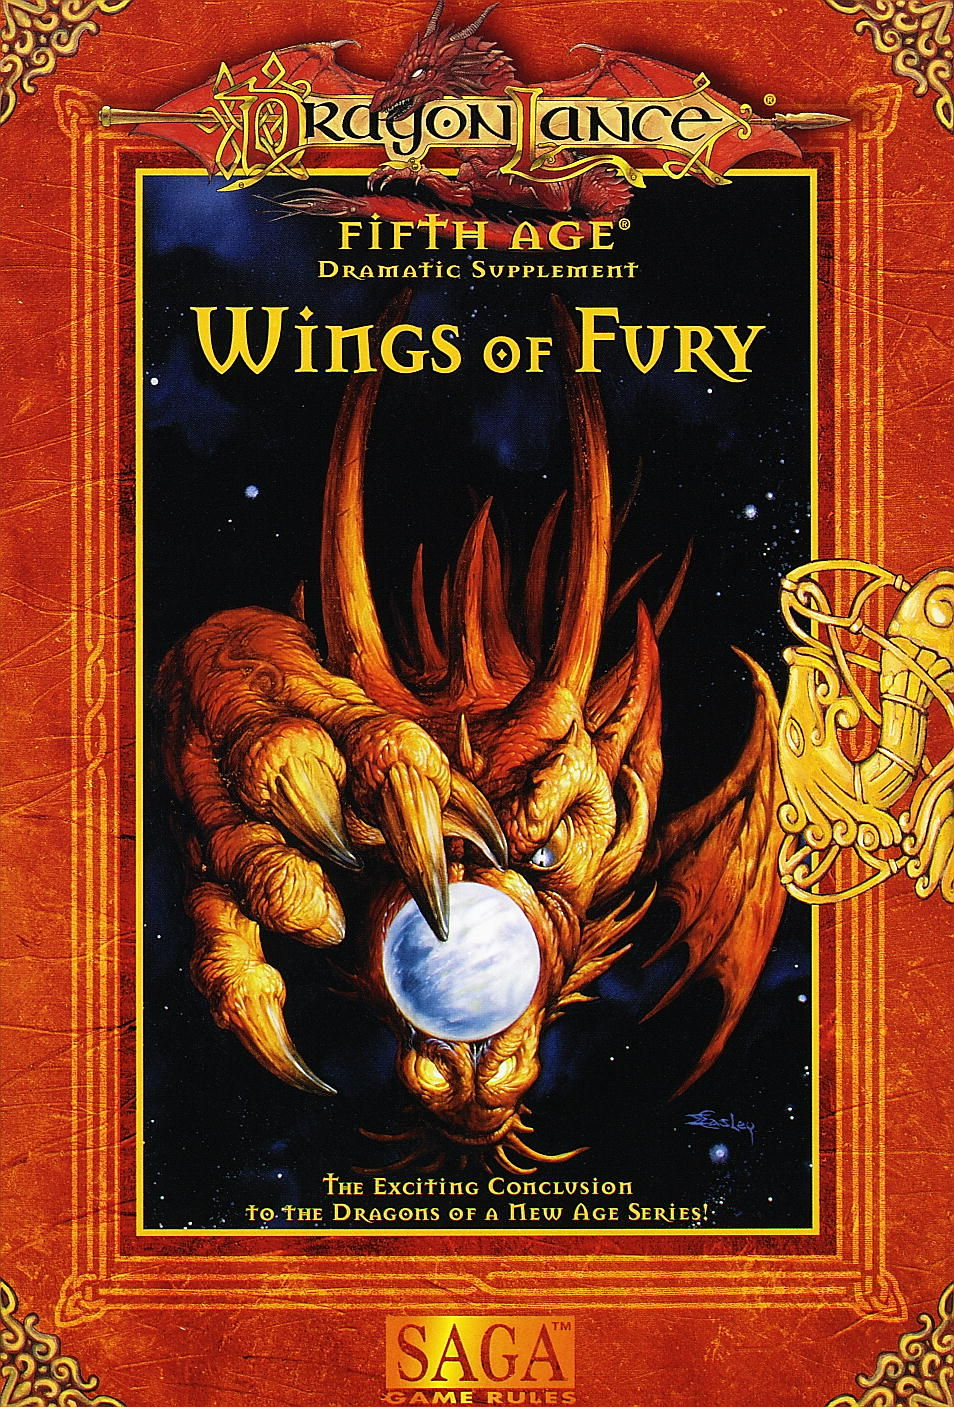 Wings of fury dragonlance fifth age dramatic adventure for Wings of fury